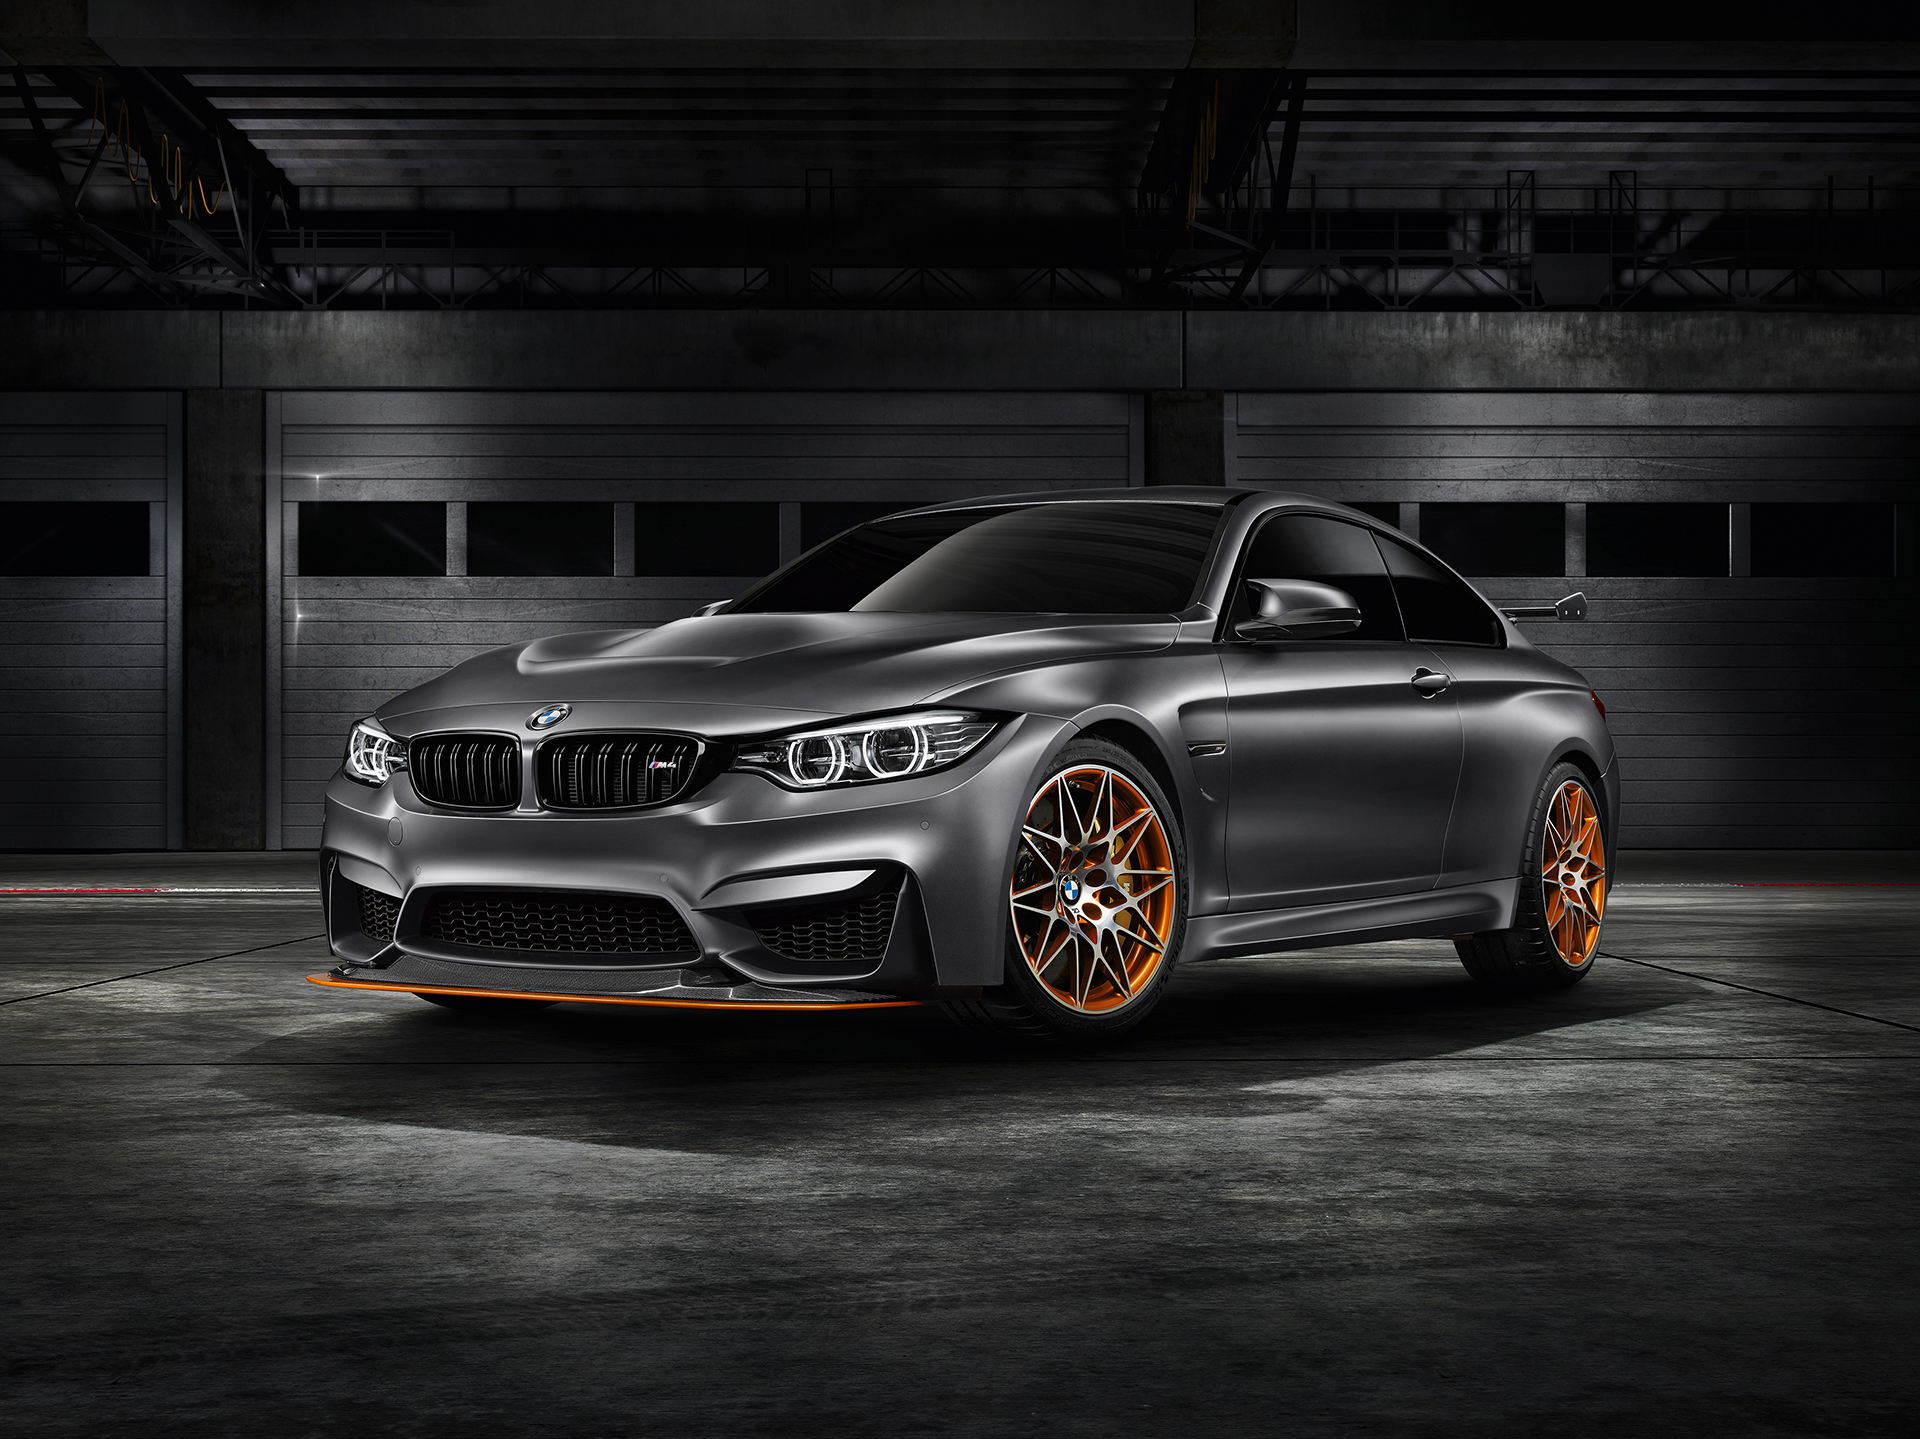 BMW M4 GTS - profil avant / front side-face